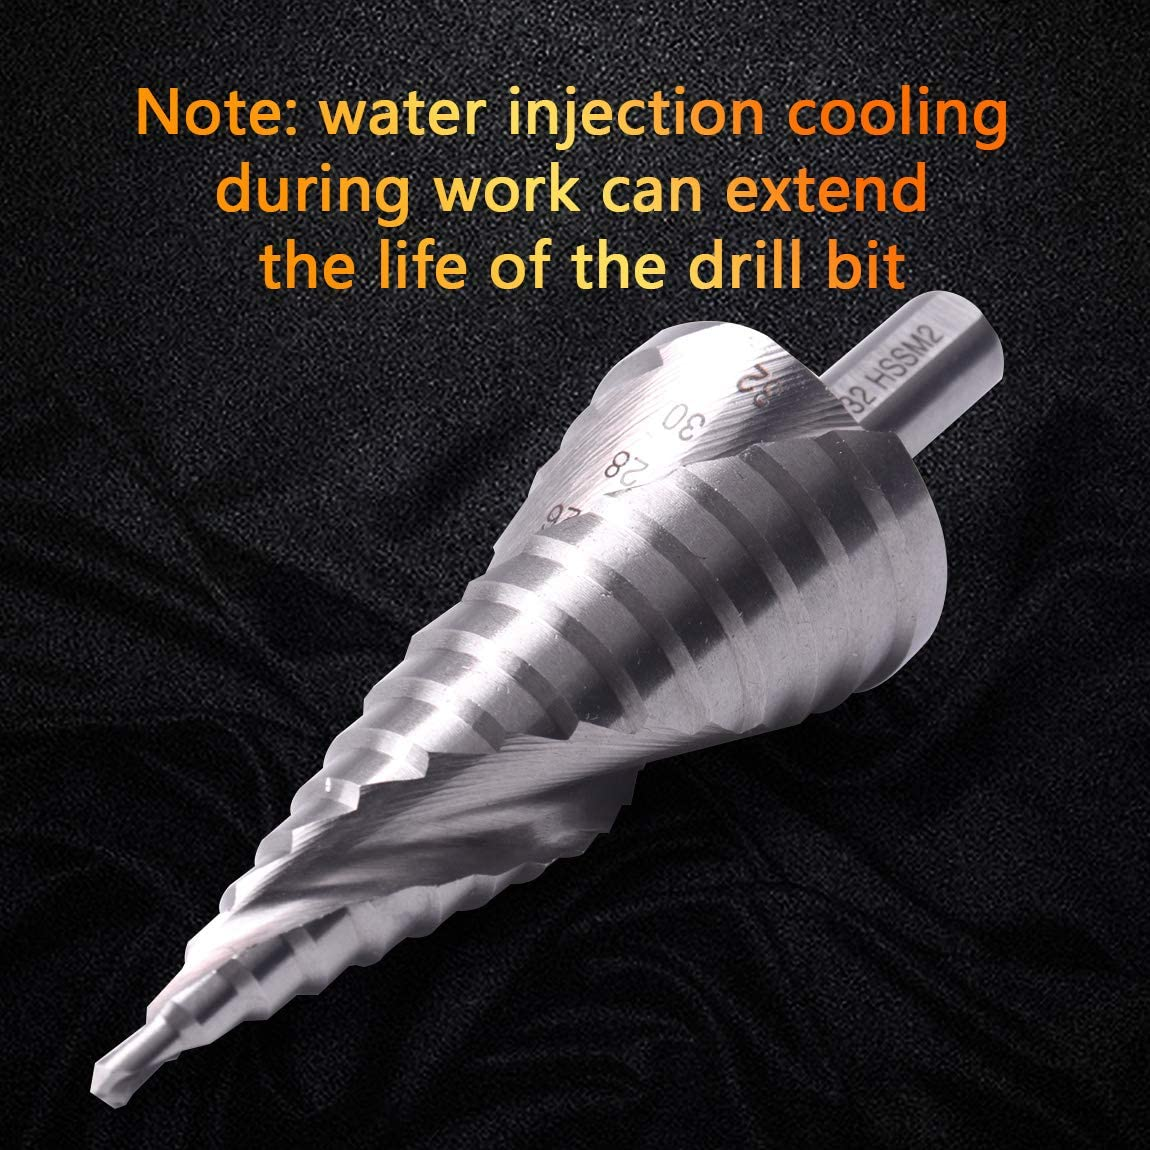 ATOPLEE HSS6542 Spiral Groove Step Drill Bit for Stainless Steel Cutting,4-32mm